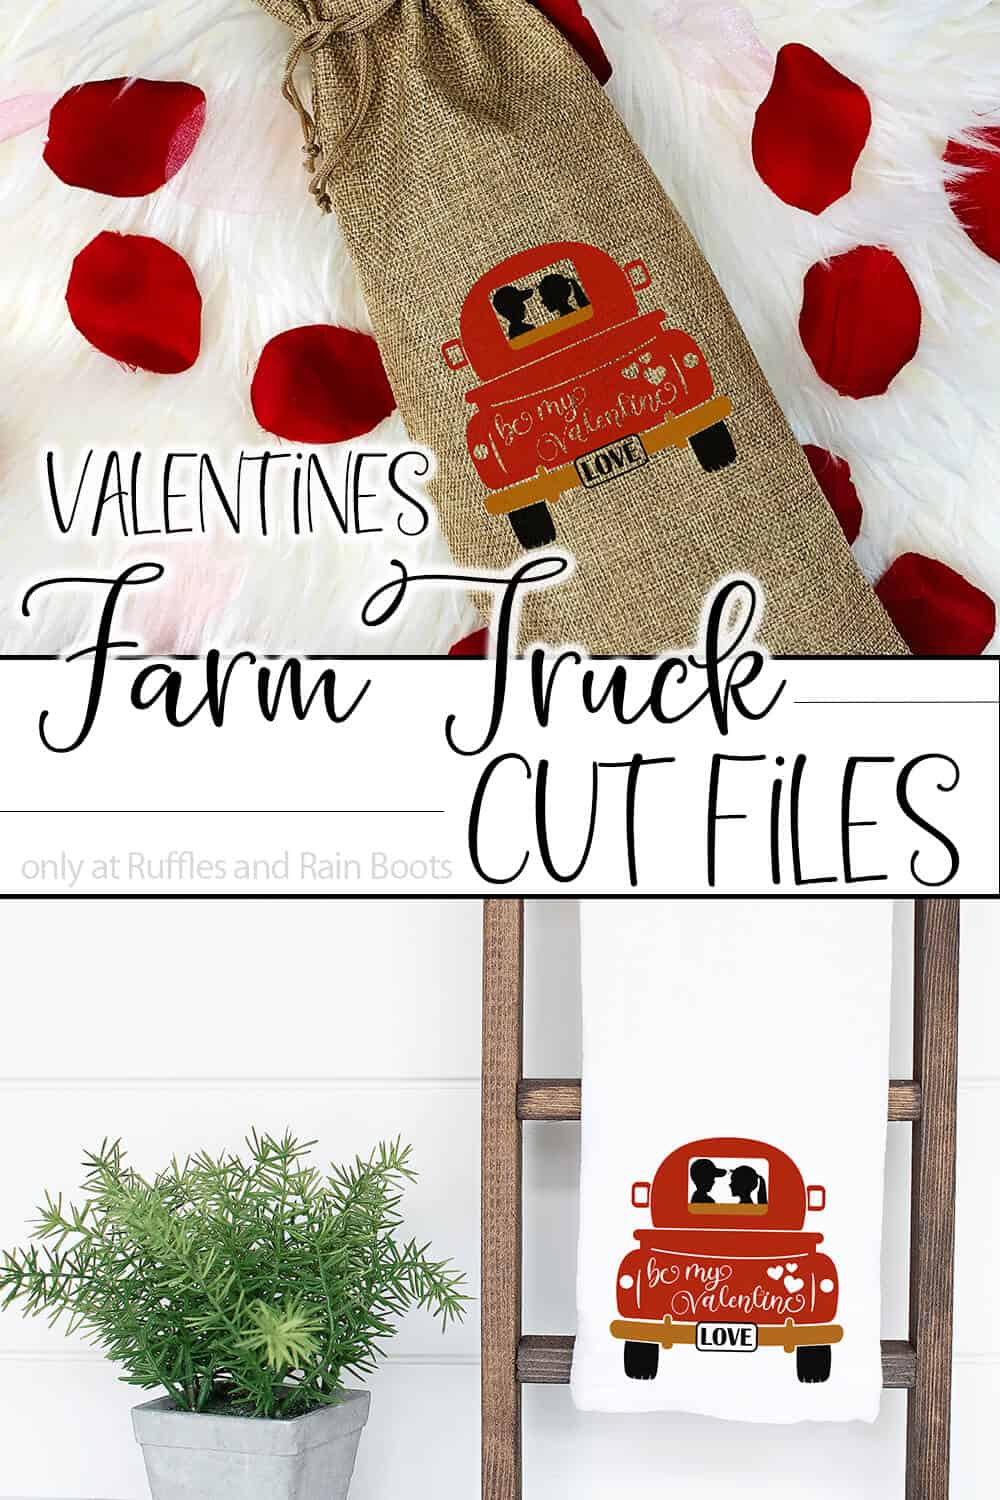 photo collage of wine bottle sleeve and kitchen towel with back of farm truck svgs for cricut or silhouette with text which reads valentines farm truck cut files